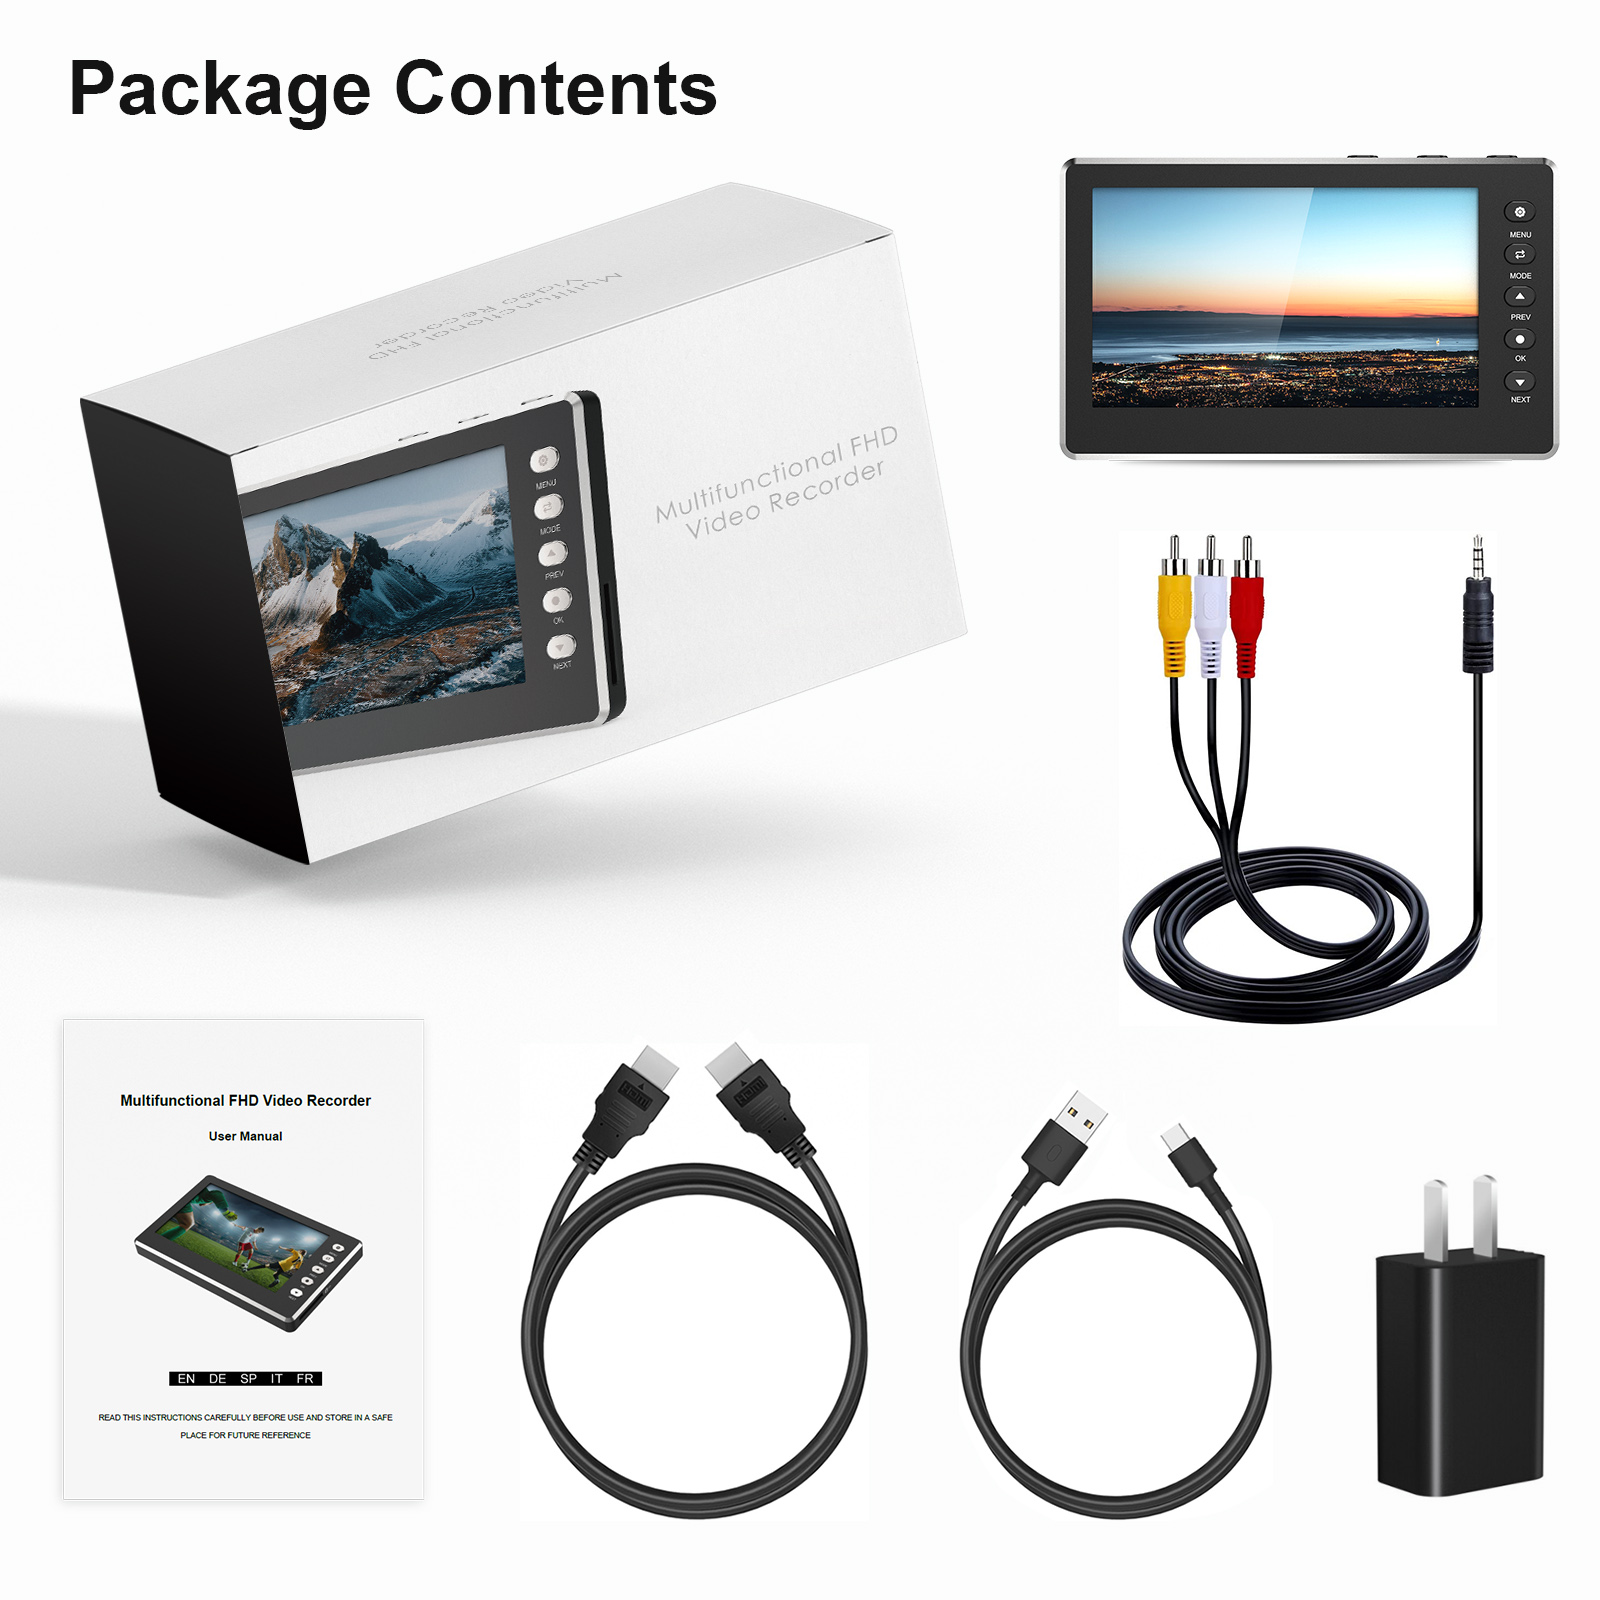 "DIGITNOW HD Video Capture Box 1080P 60FPS USB 2.0 Video to Digital Converter with 5"" OLED Screen, AV&HDMI Video Recorder Capture from VCR, DVD, VHS Tapes, Hi8, Camcorders, Gaming Systems"